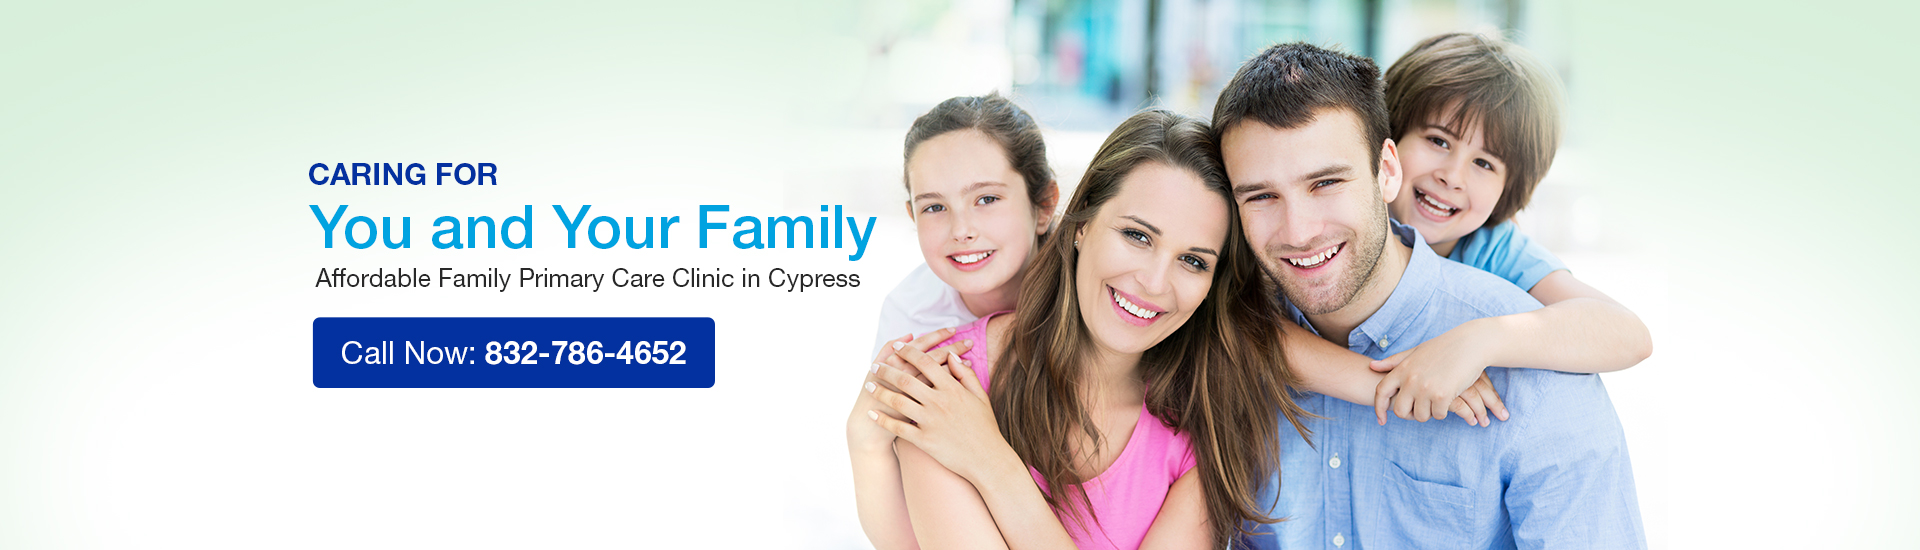 affordable-family-care-cypress